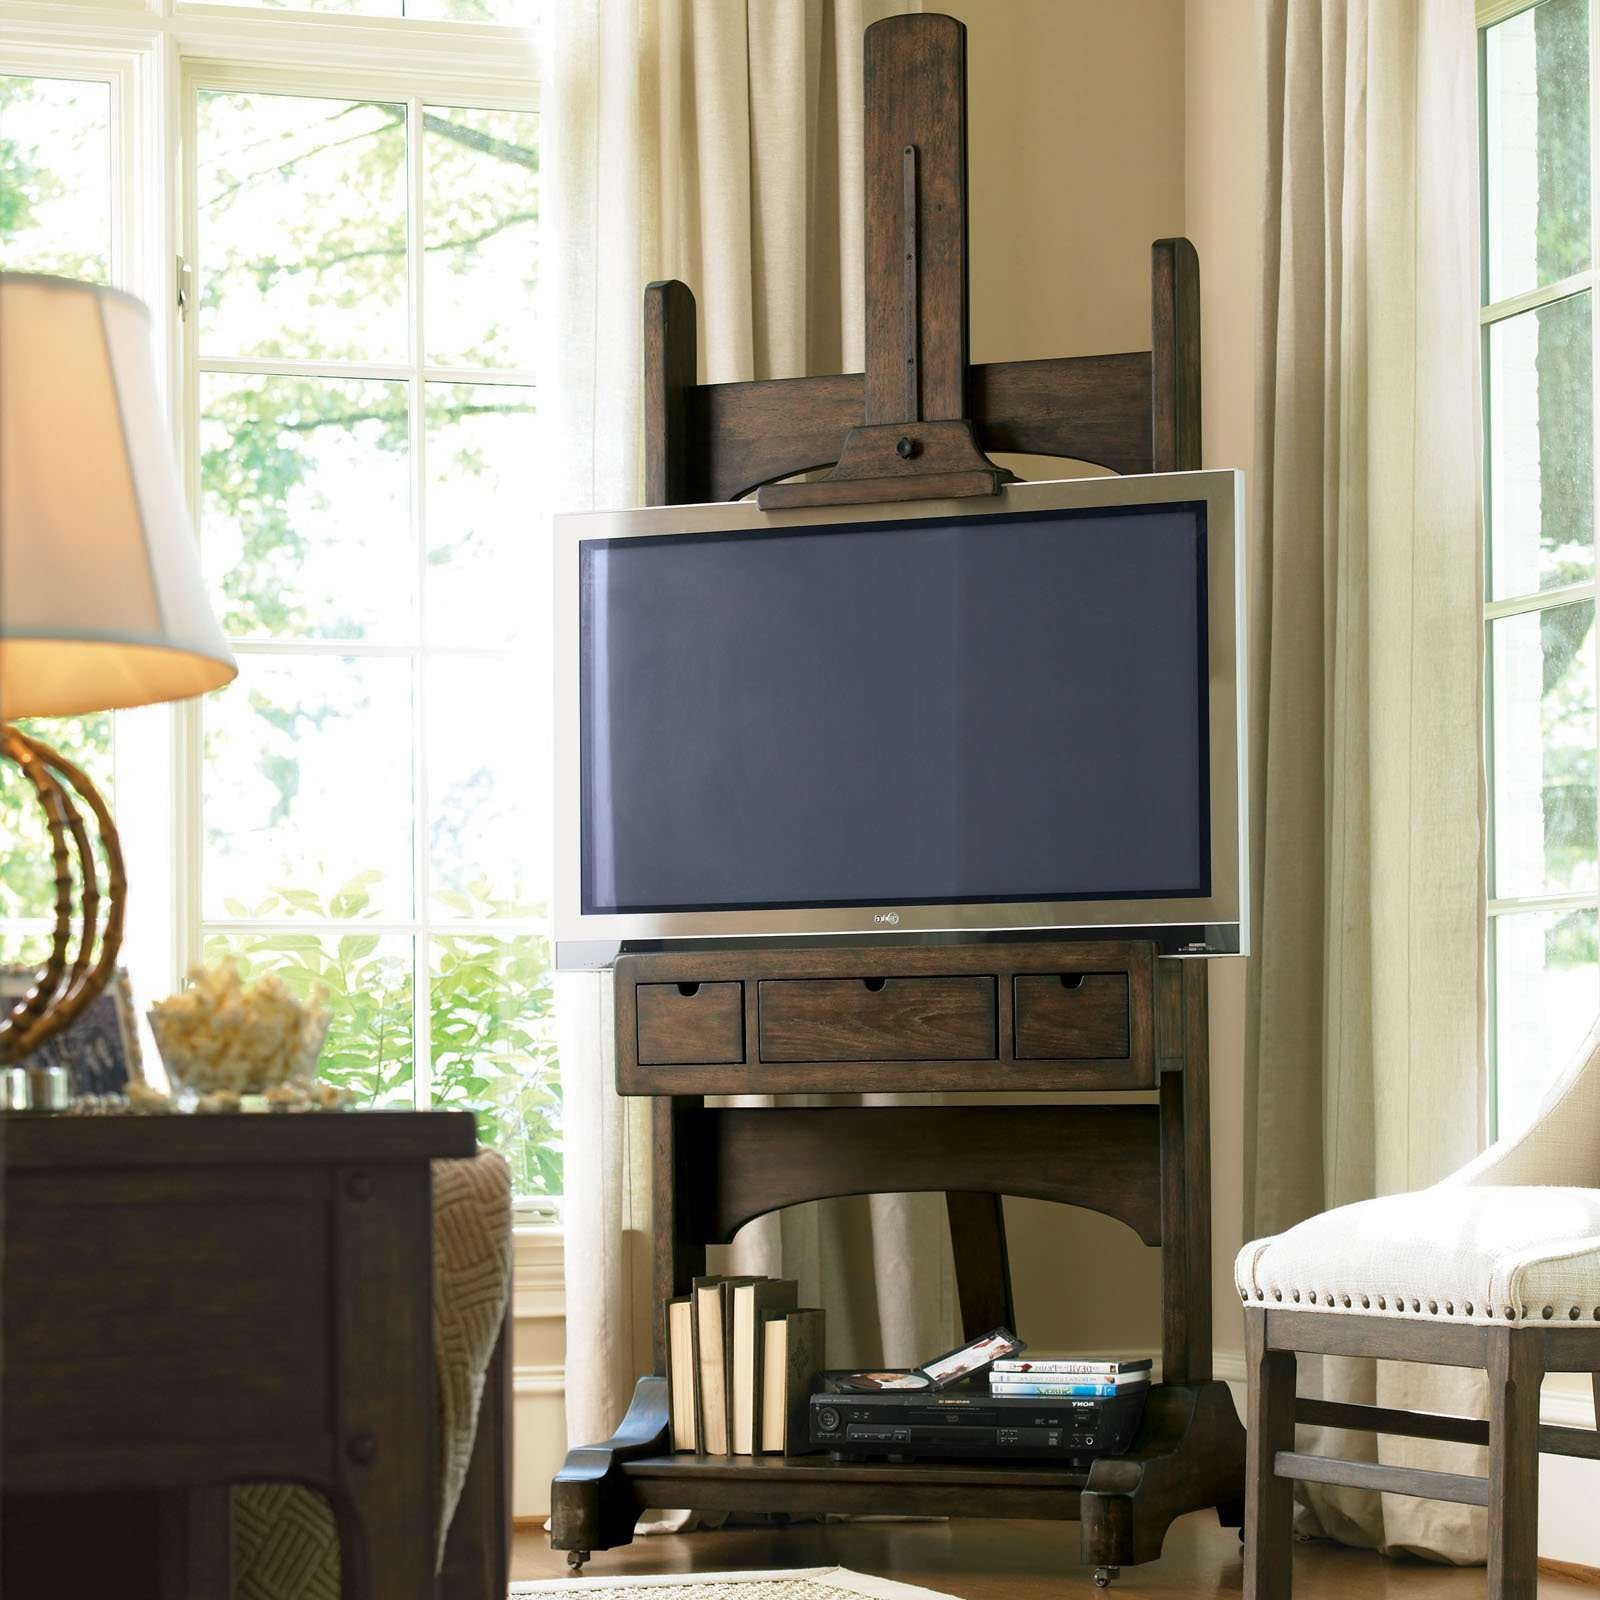 Terrific Target Flat Screen Tv Stands Sauder Media Cabinet Sauder Regarding Easel Tv Stands For Flat Screens (View 6 of 15)